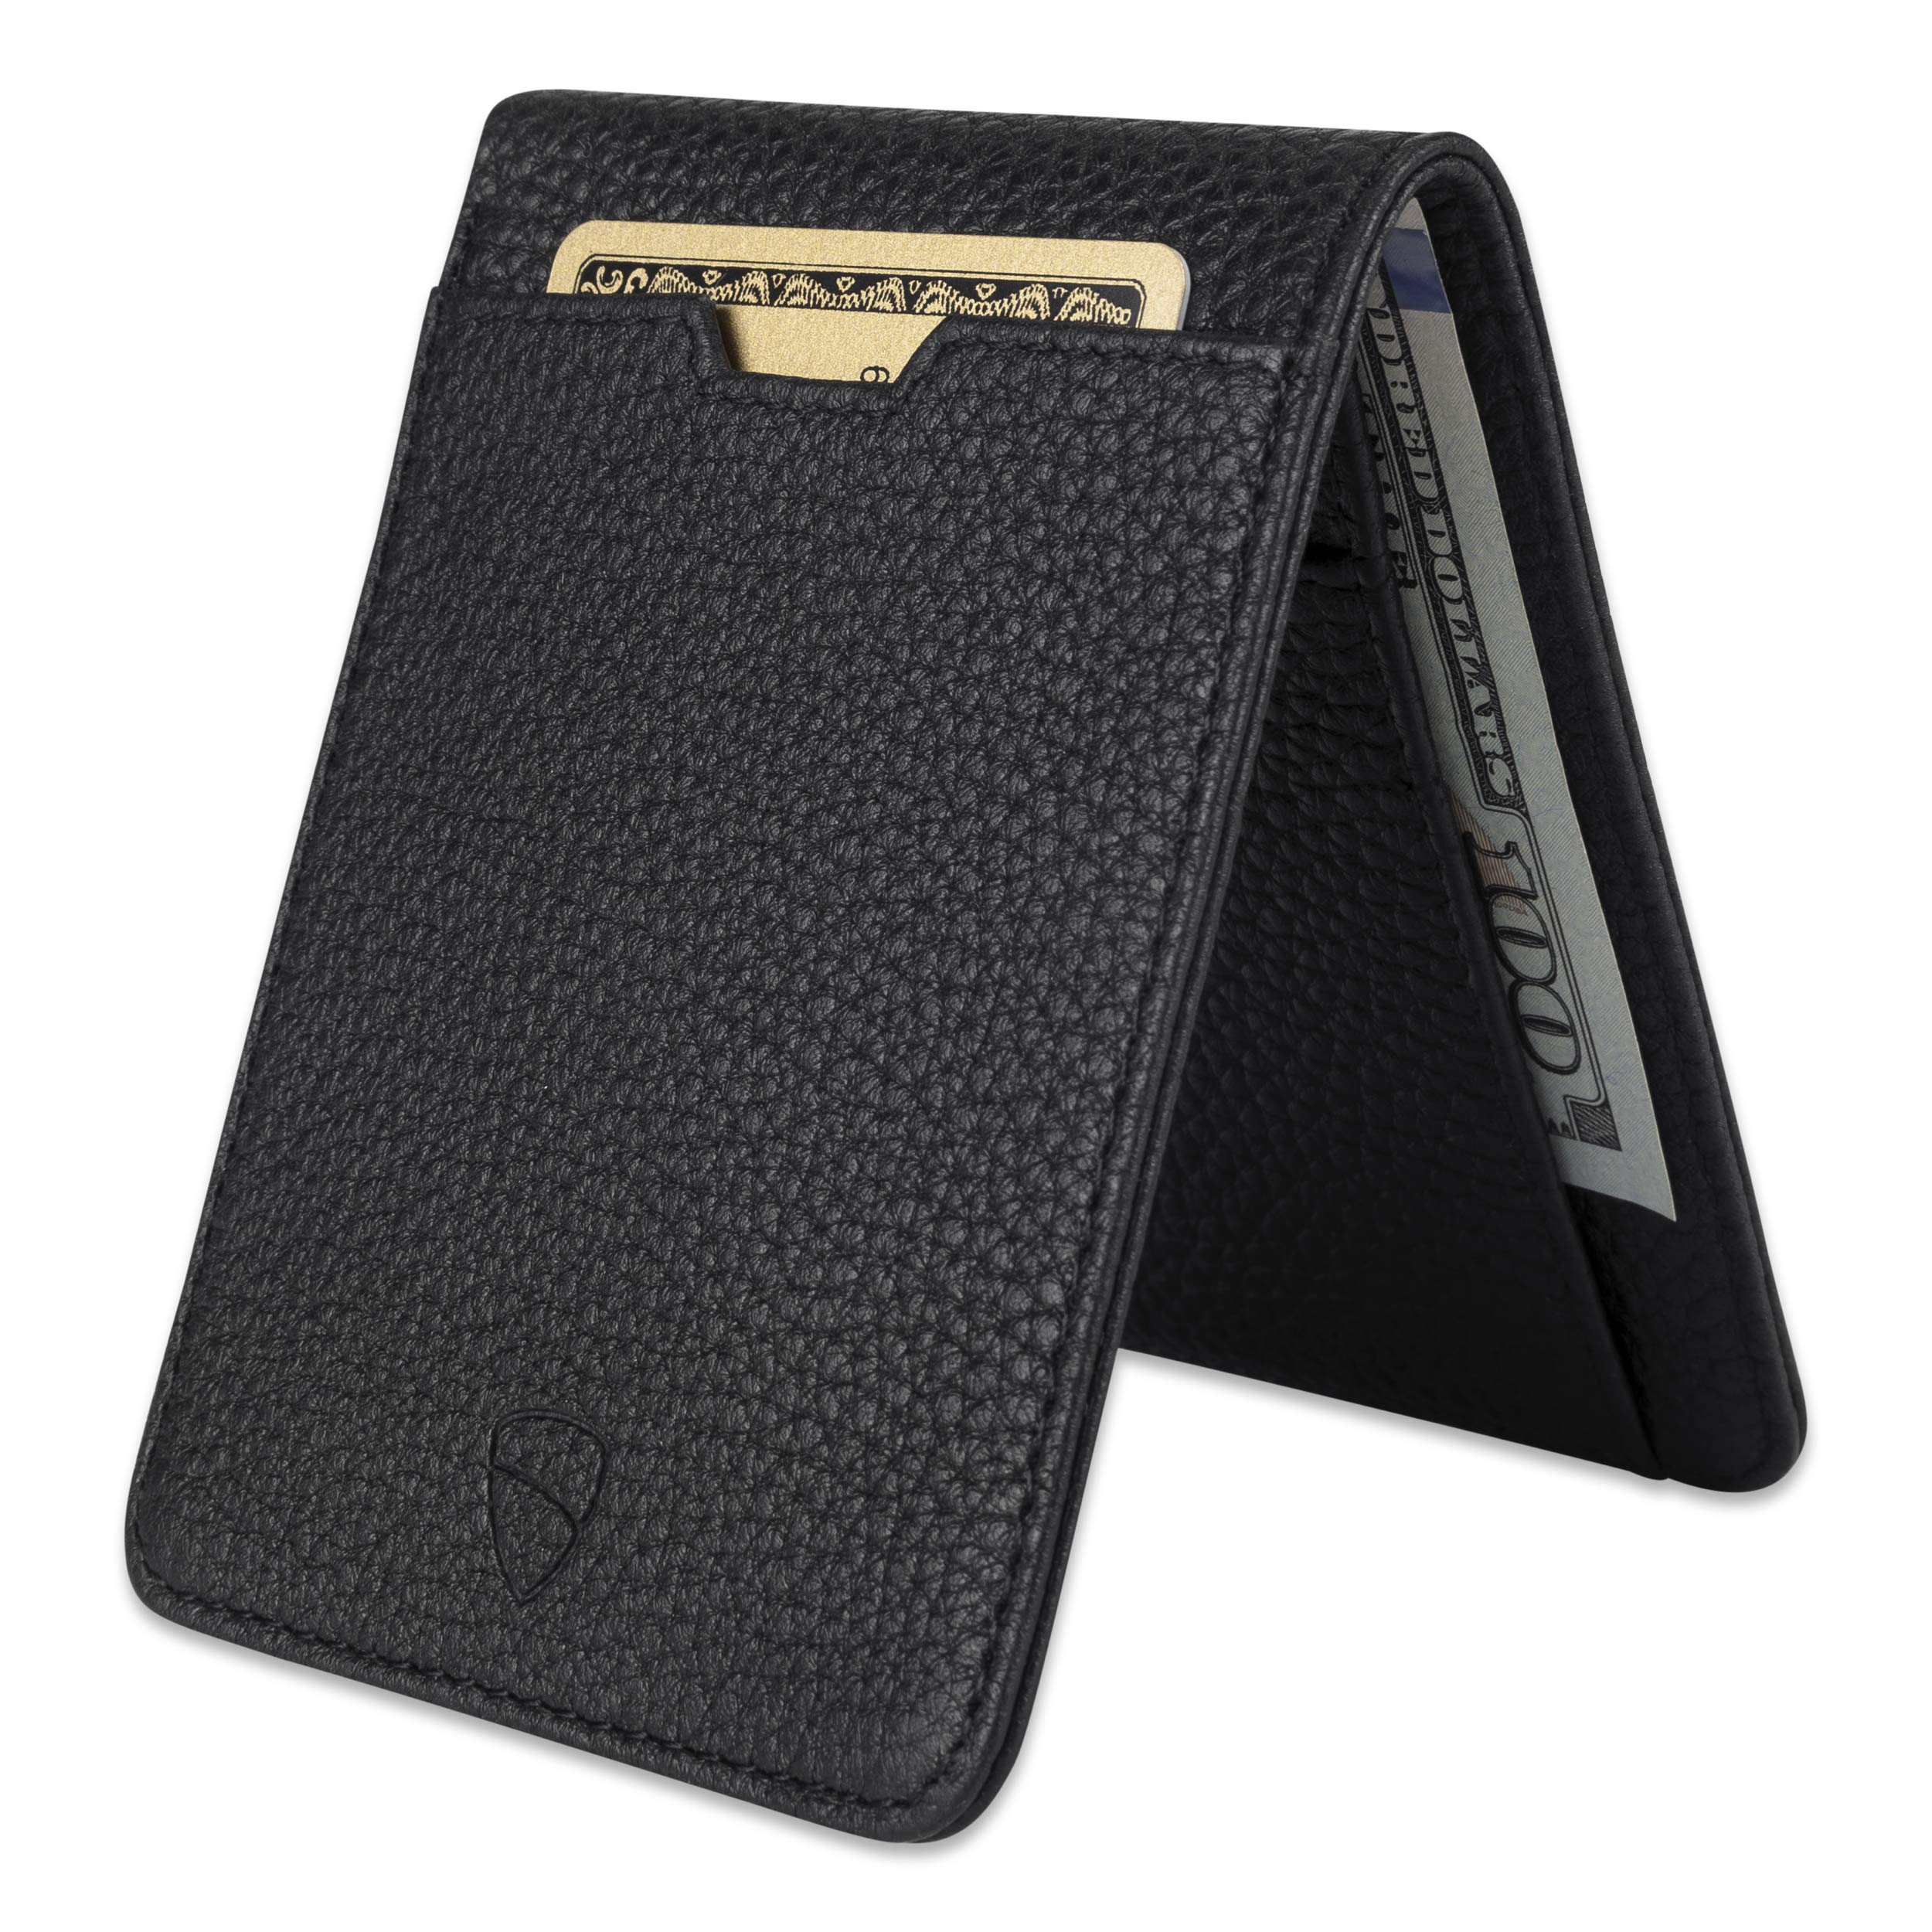 Vaultskin MANHATTAN Slim Bifold Wallet with RFID Protection for Cards and Cash (Matt Black) by Vaultskin